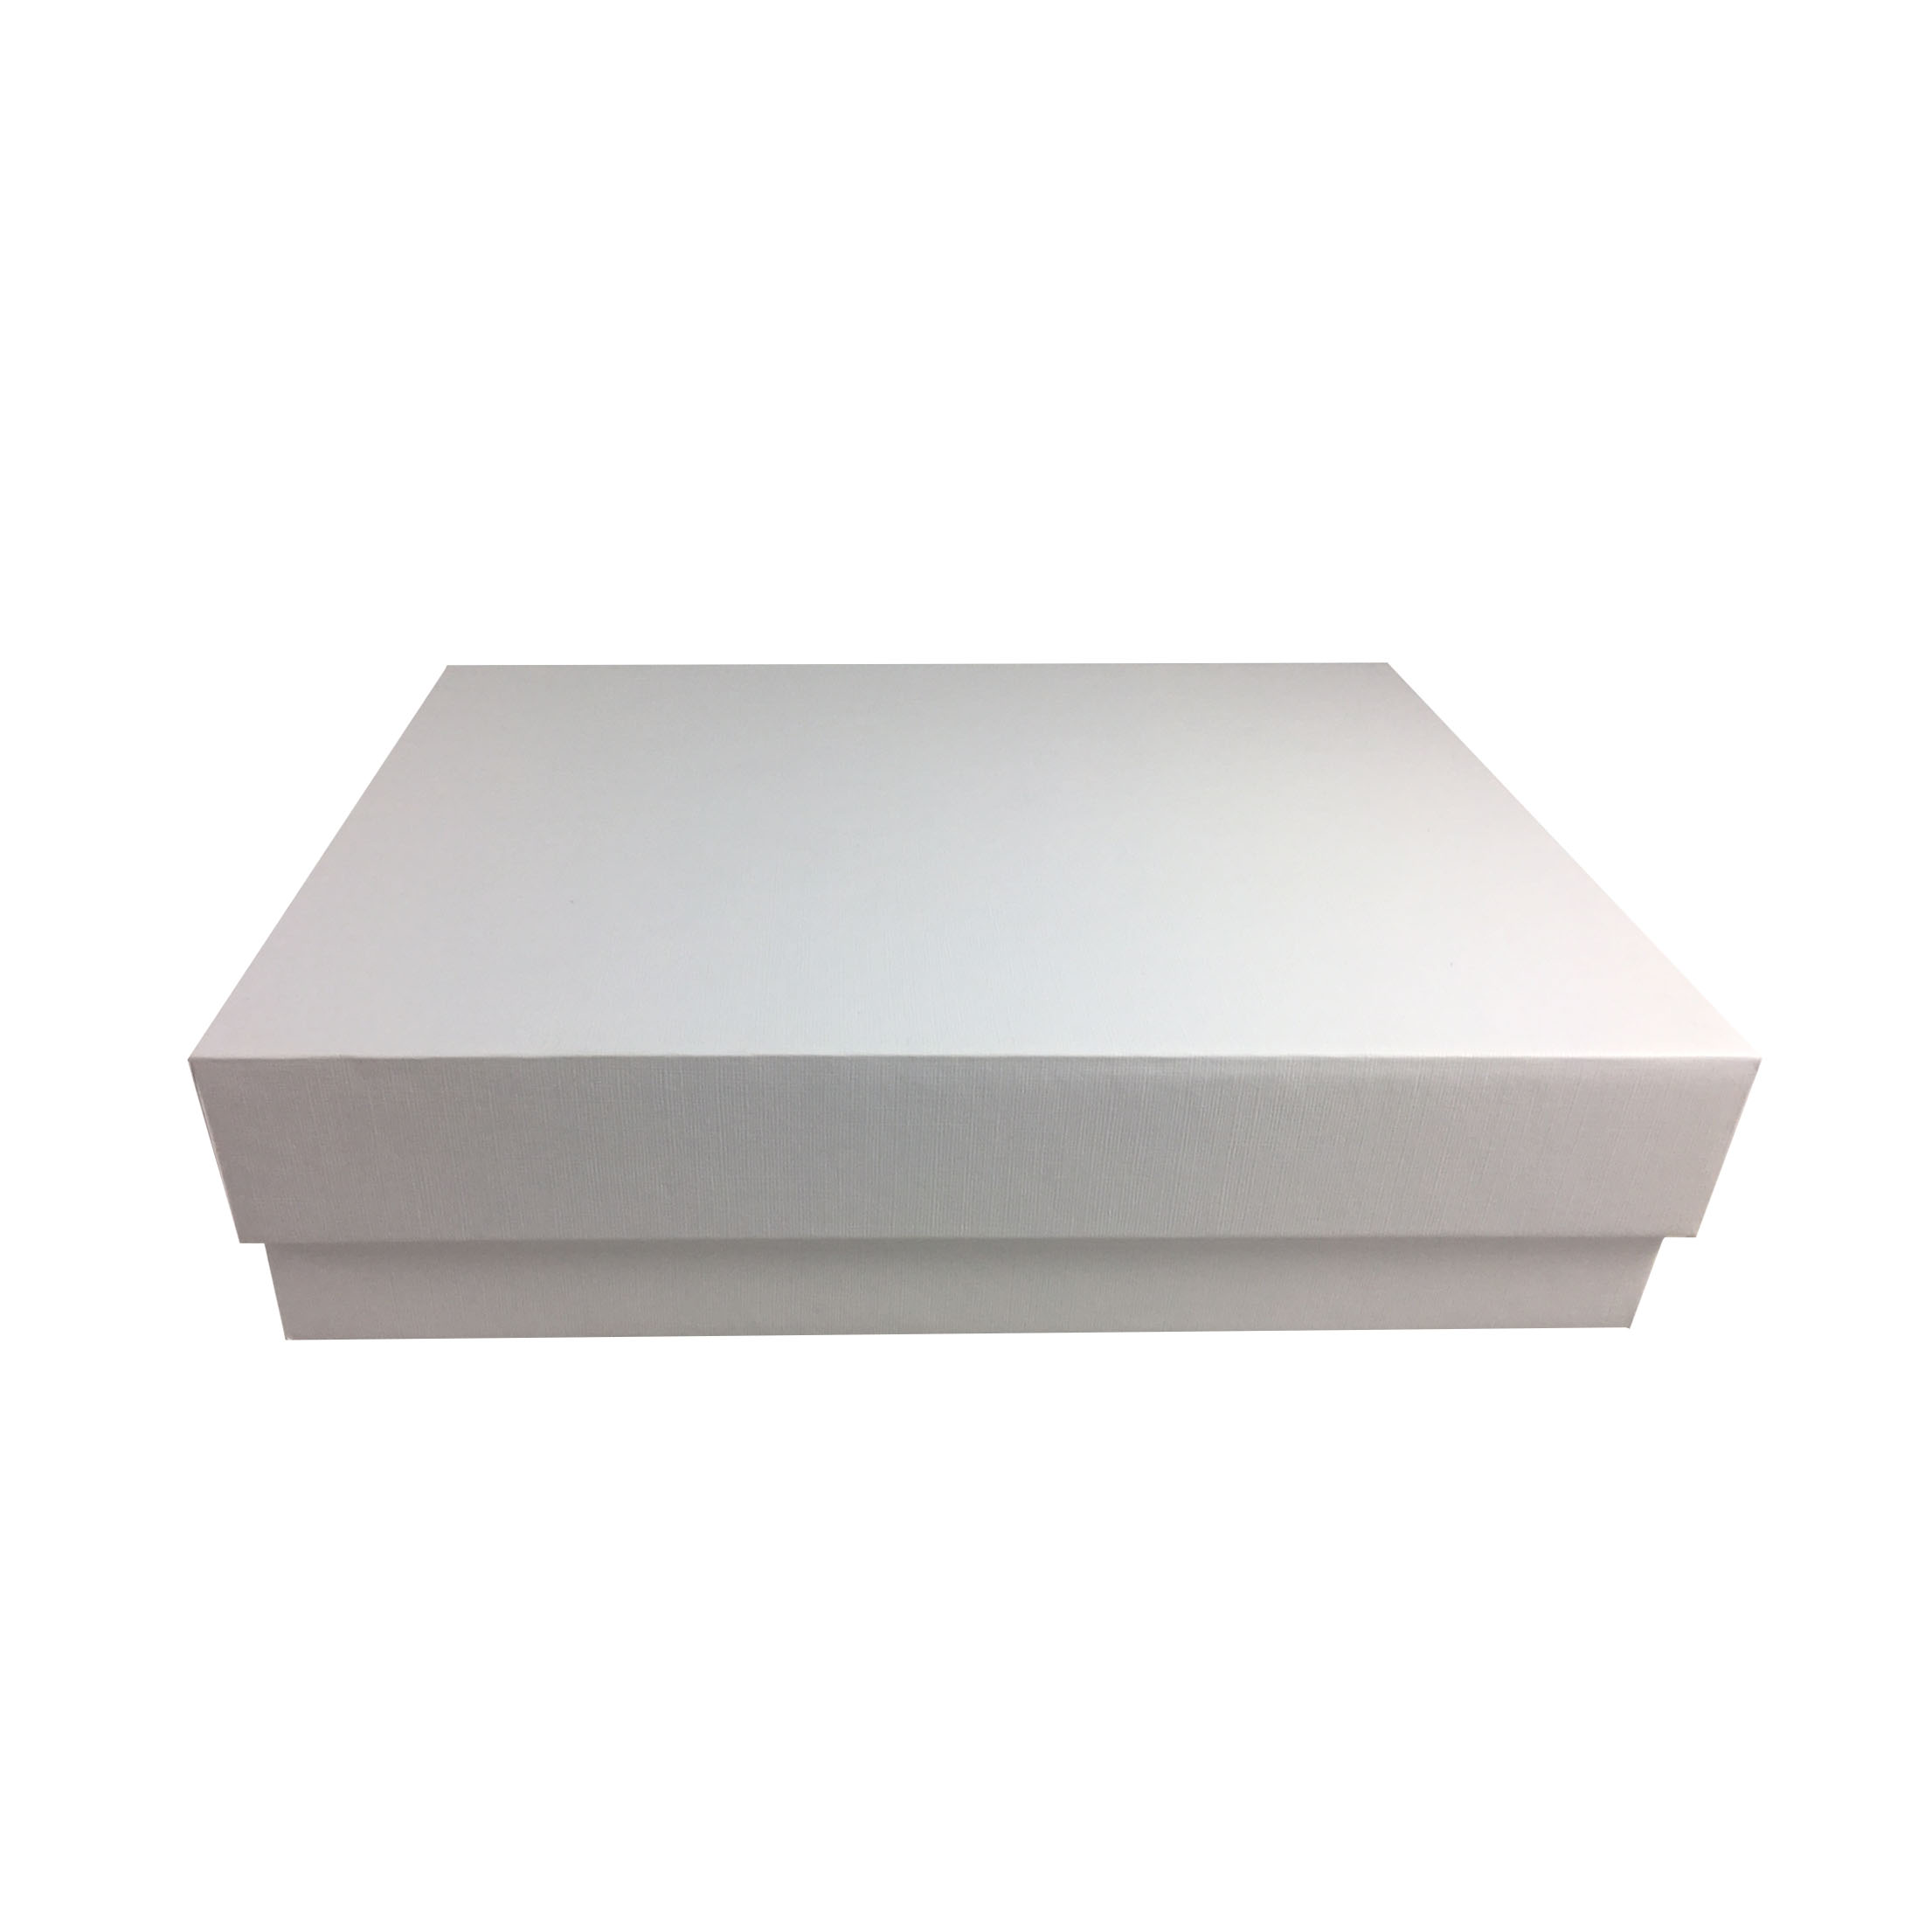 white mailing boxes to mail out wedding boxes and invitations